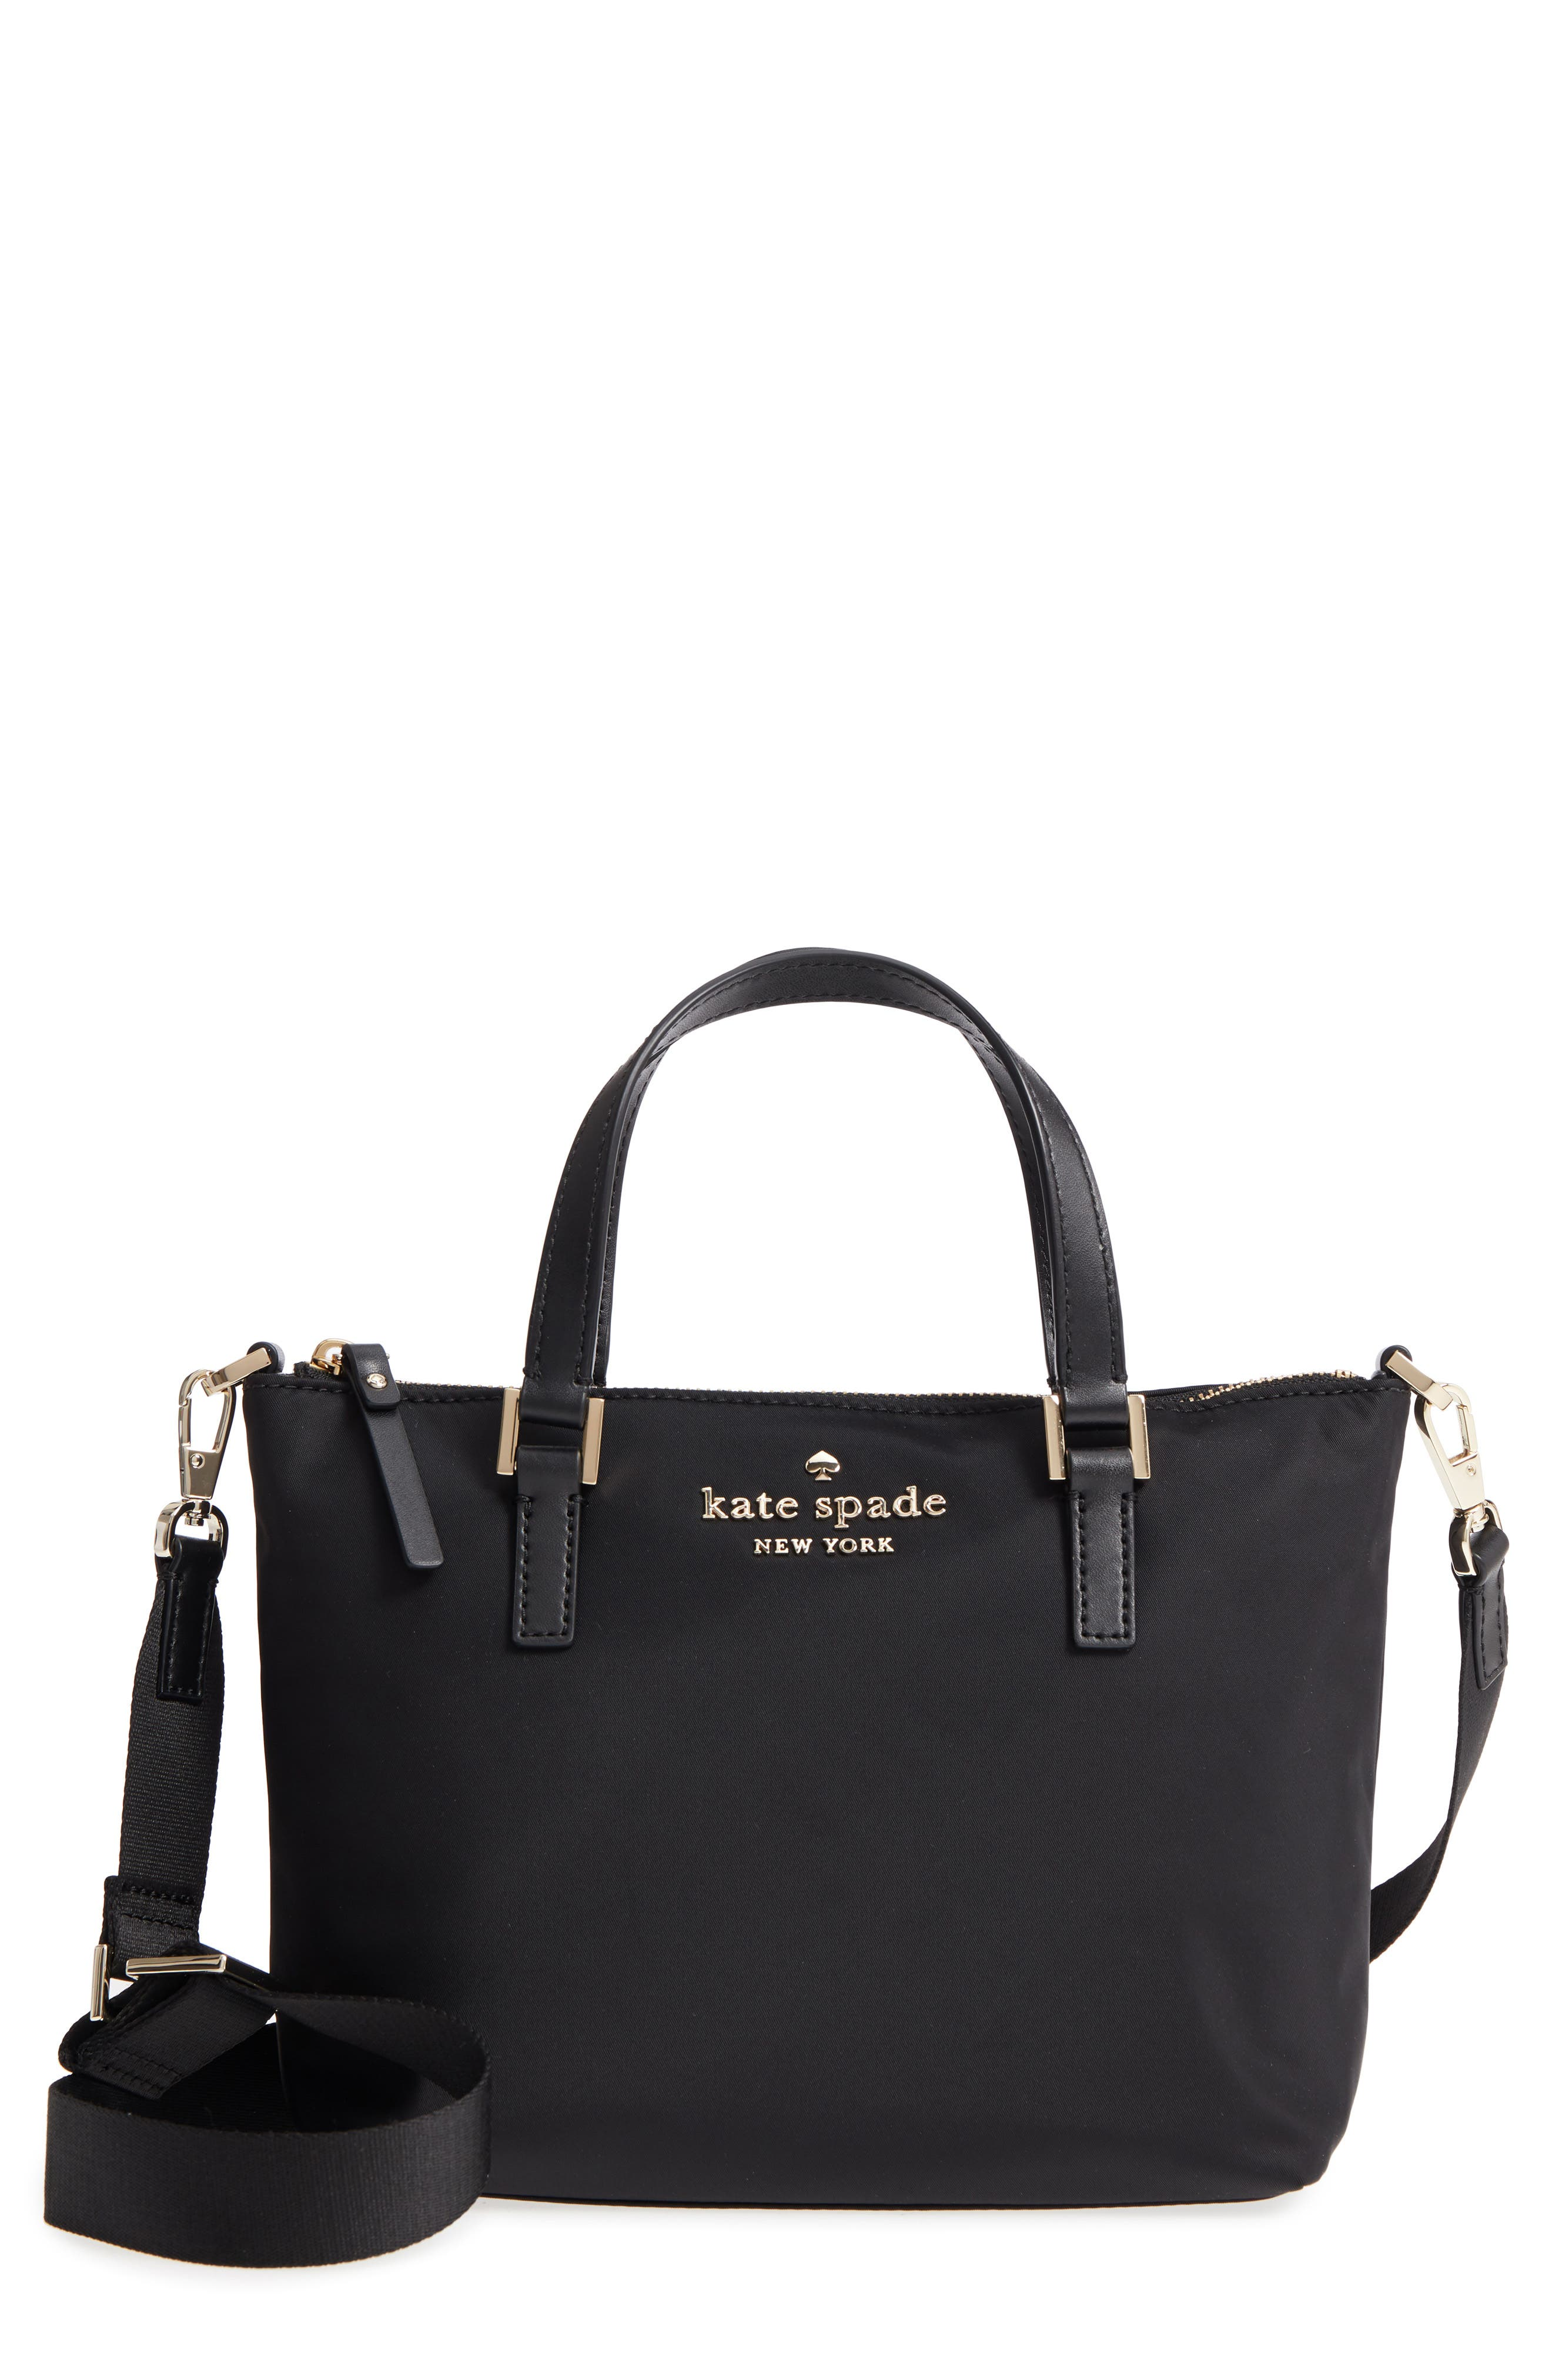 95a8ad2d00e9 Kate Spade New York Crossbody Bags